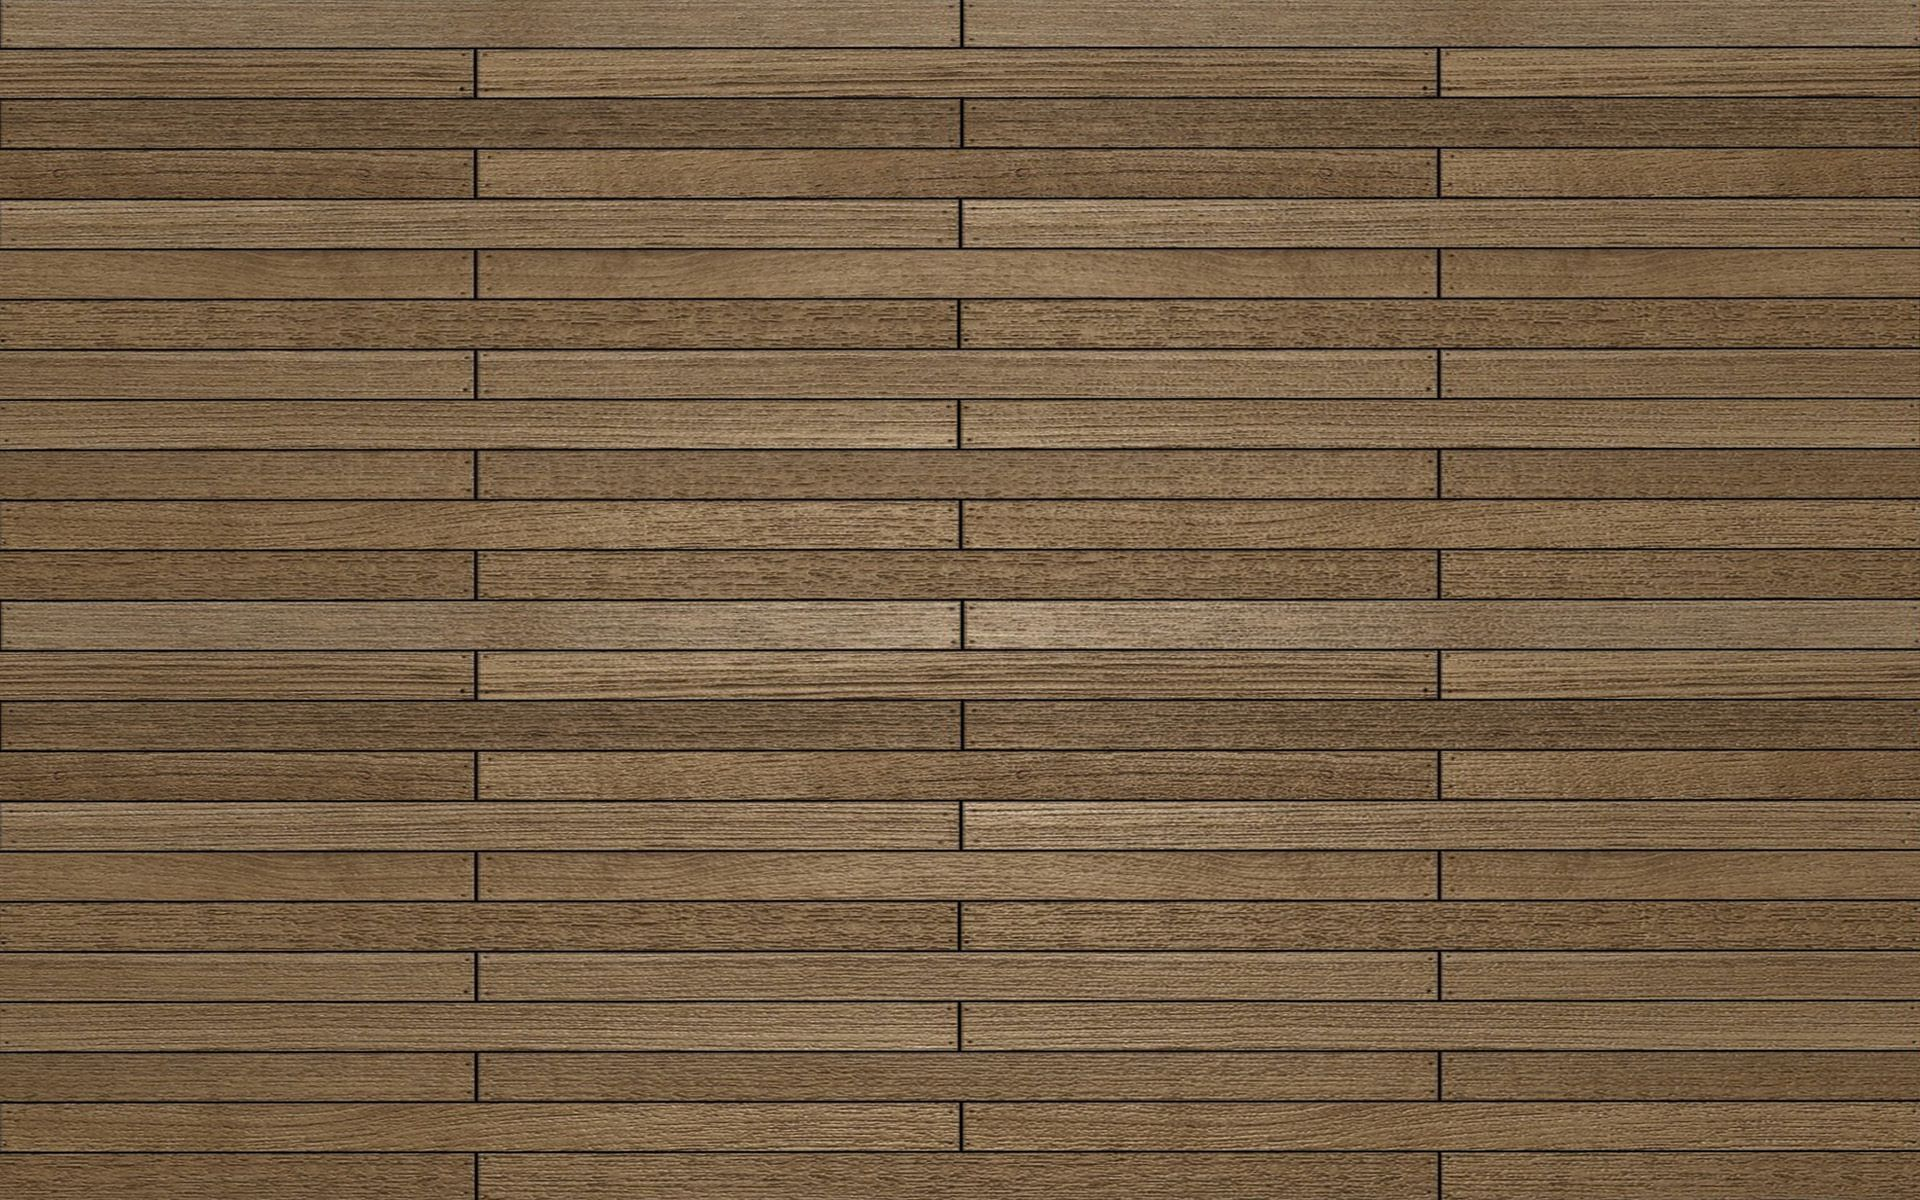 Wood flooring background awesome 31006 material texture for Hardwood outdoor decking